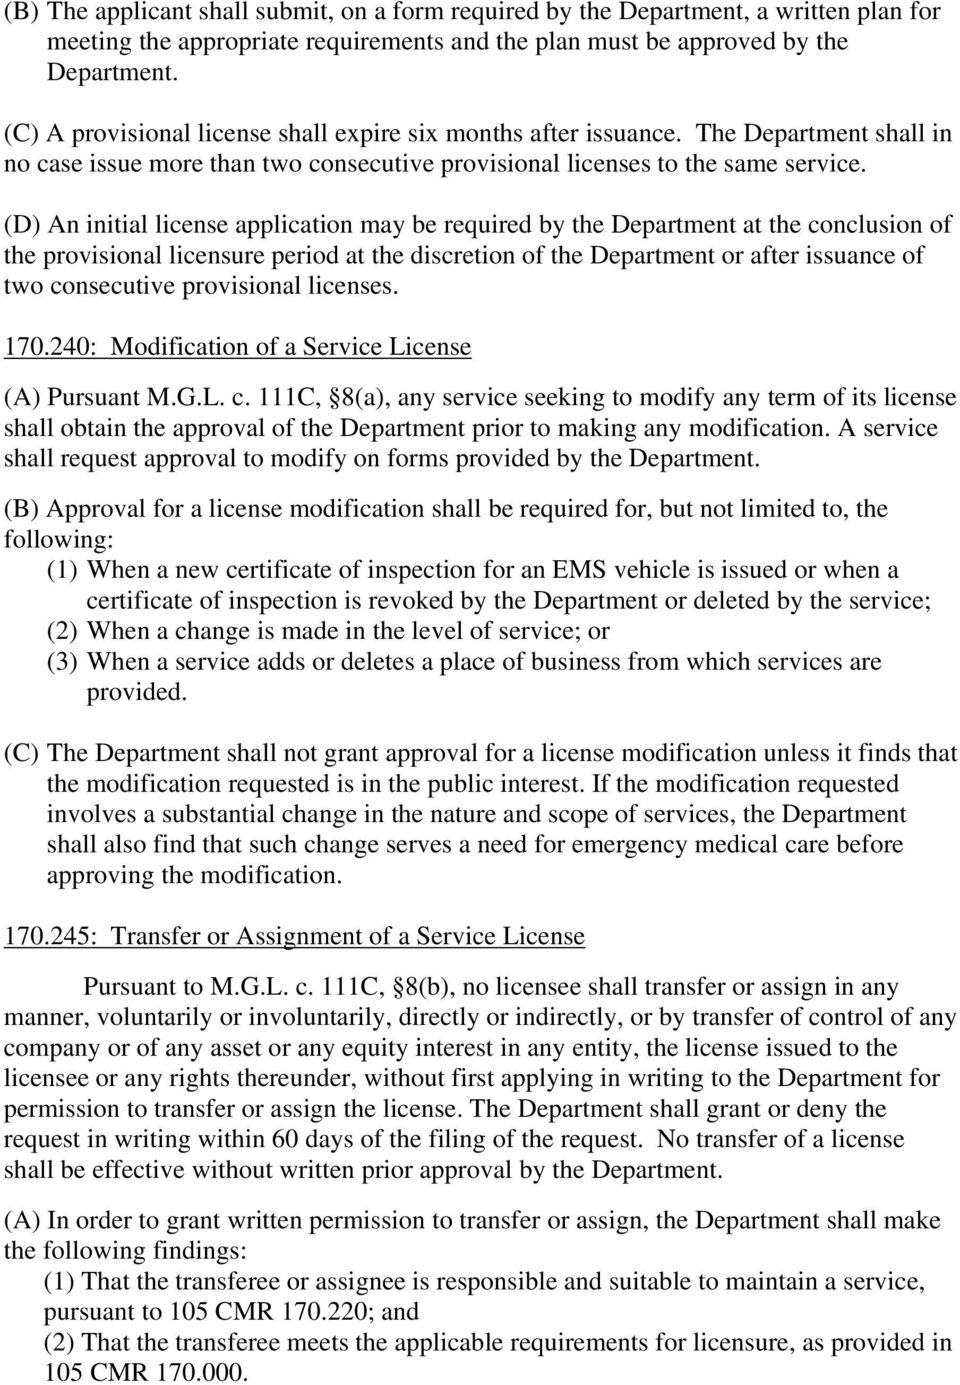 (D) An initial license application may be required by the Department at the conclusion of the provisional licensure period at the discretion of the Department or after issuance of two consecutive